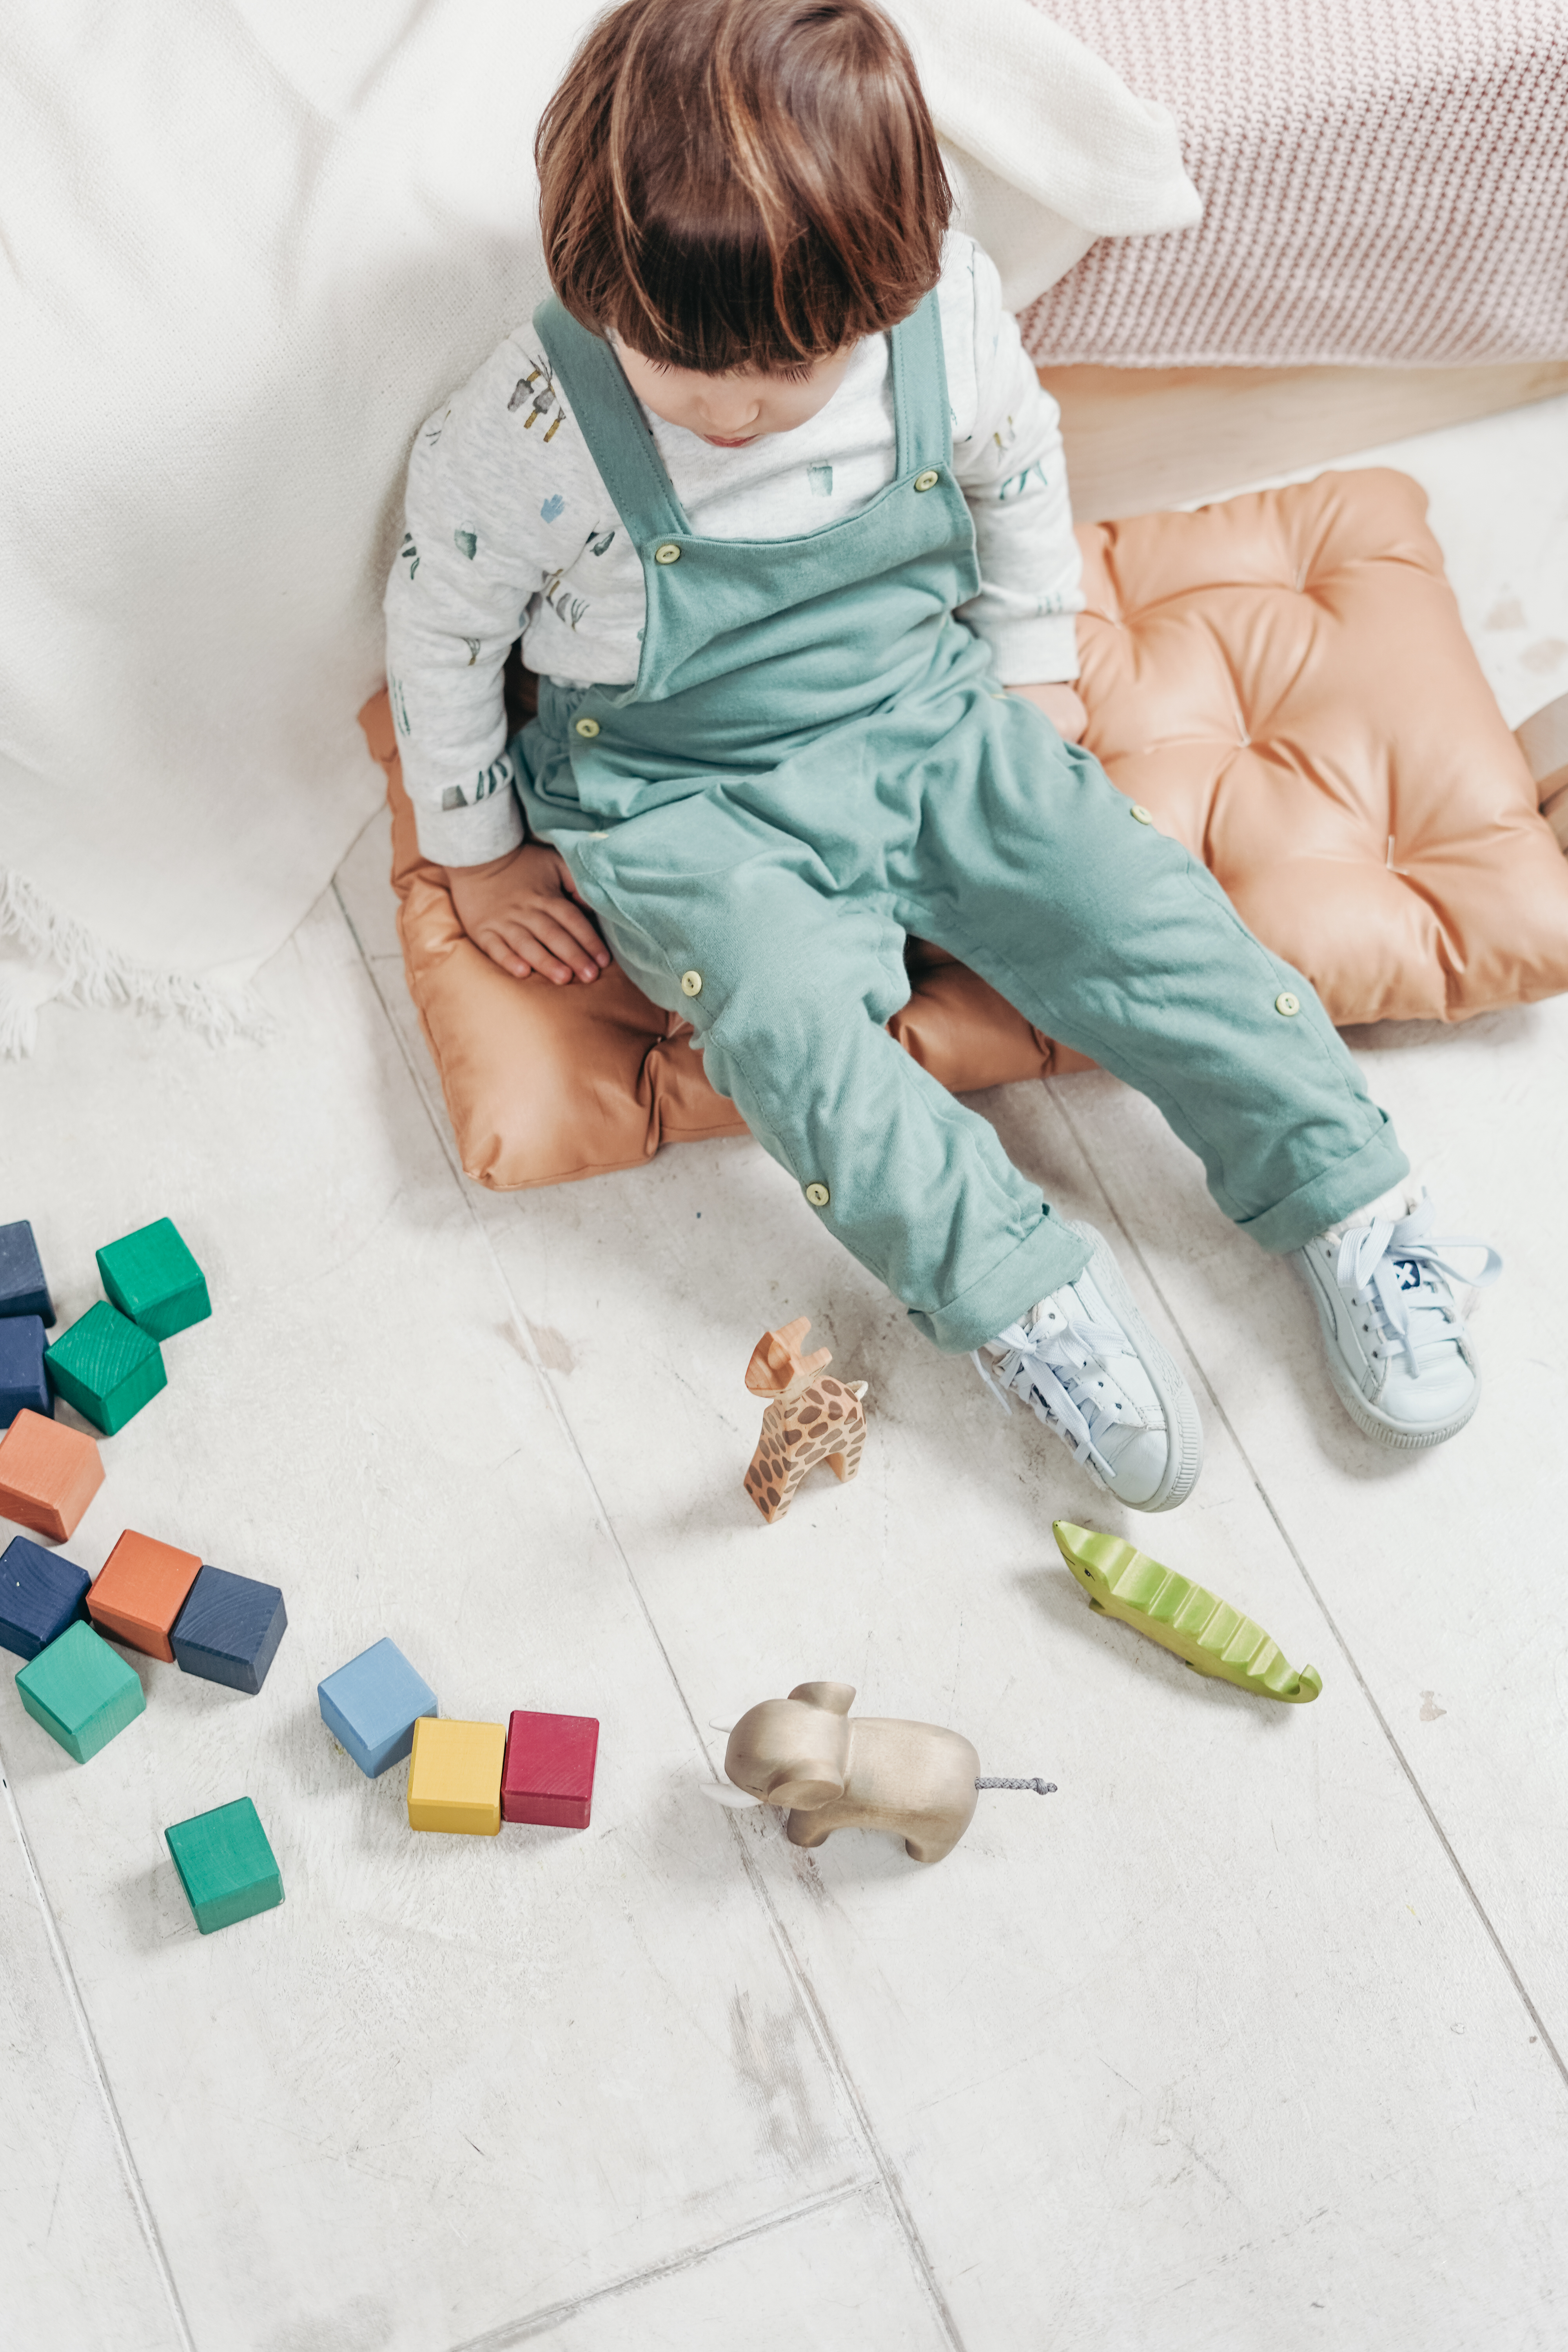 child in green over all sitting on a pillow